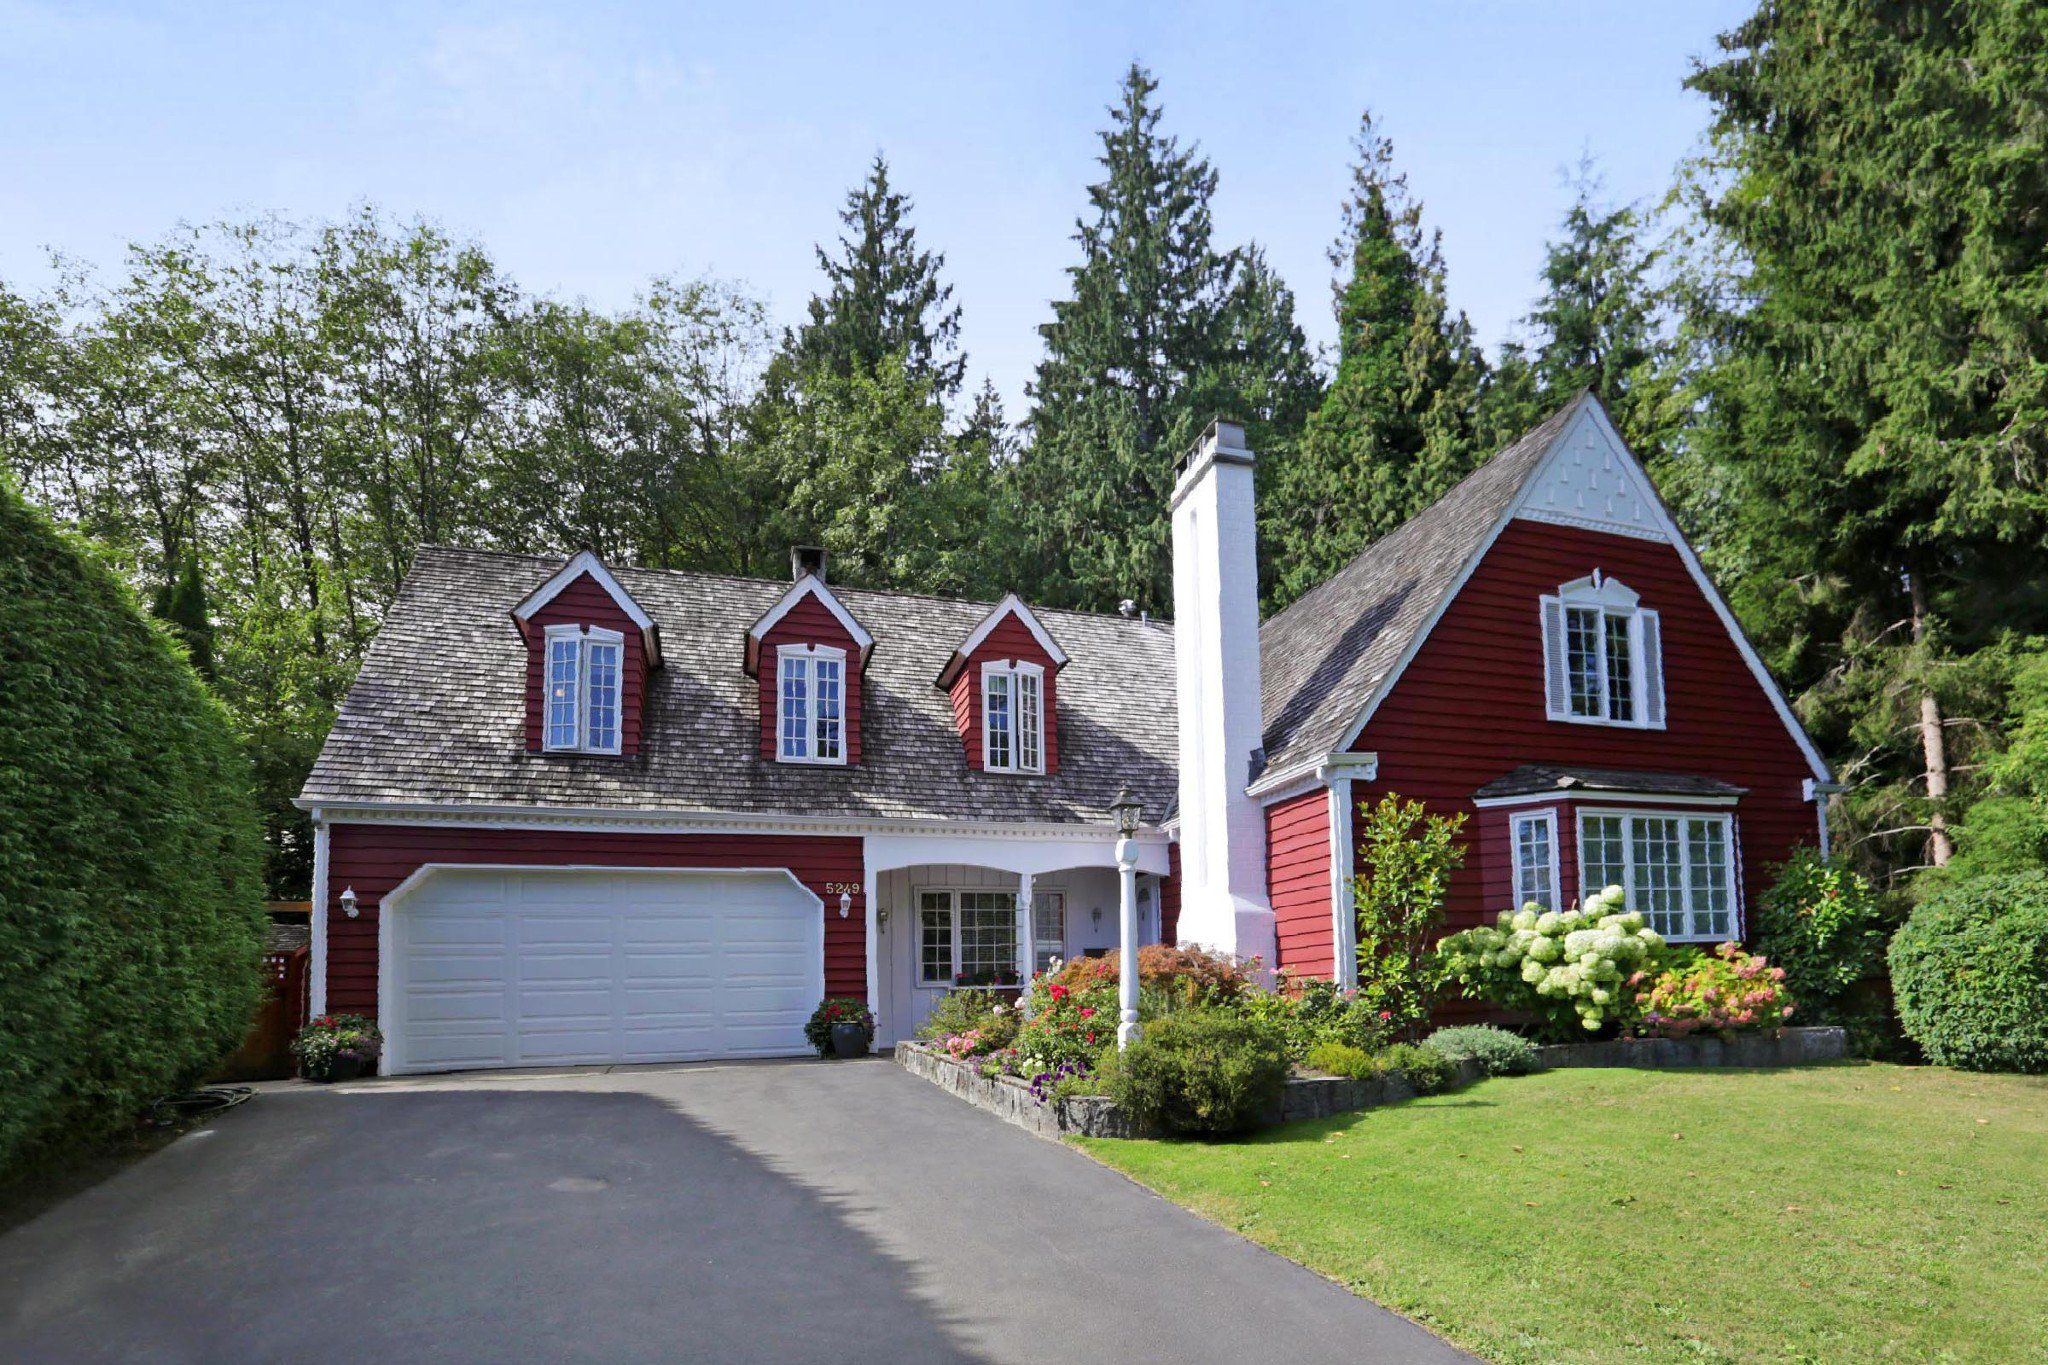 Main Photo: 5249 CLIFFRIDGE Avenue in North Vancouver: Canyon Heights NV House for sale : MLS®# R2306859